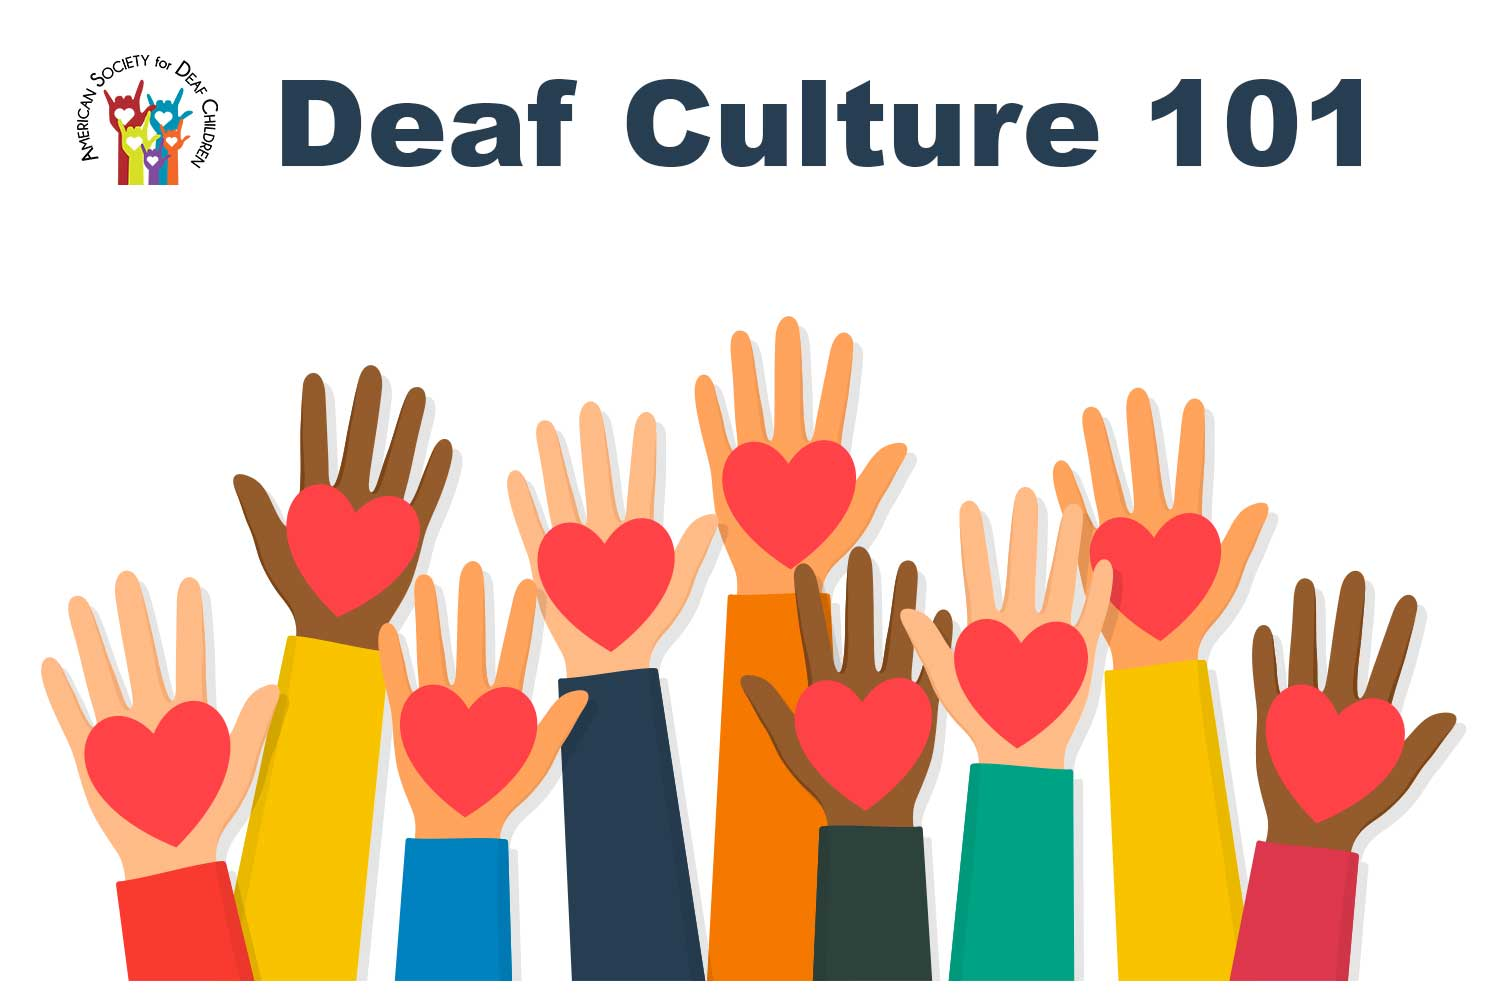 image shows open hands with hearts, with the text Deaf Culture 101 and the ASDC logo